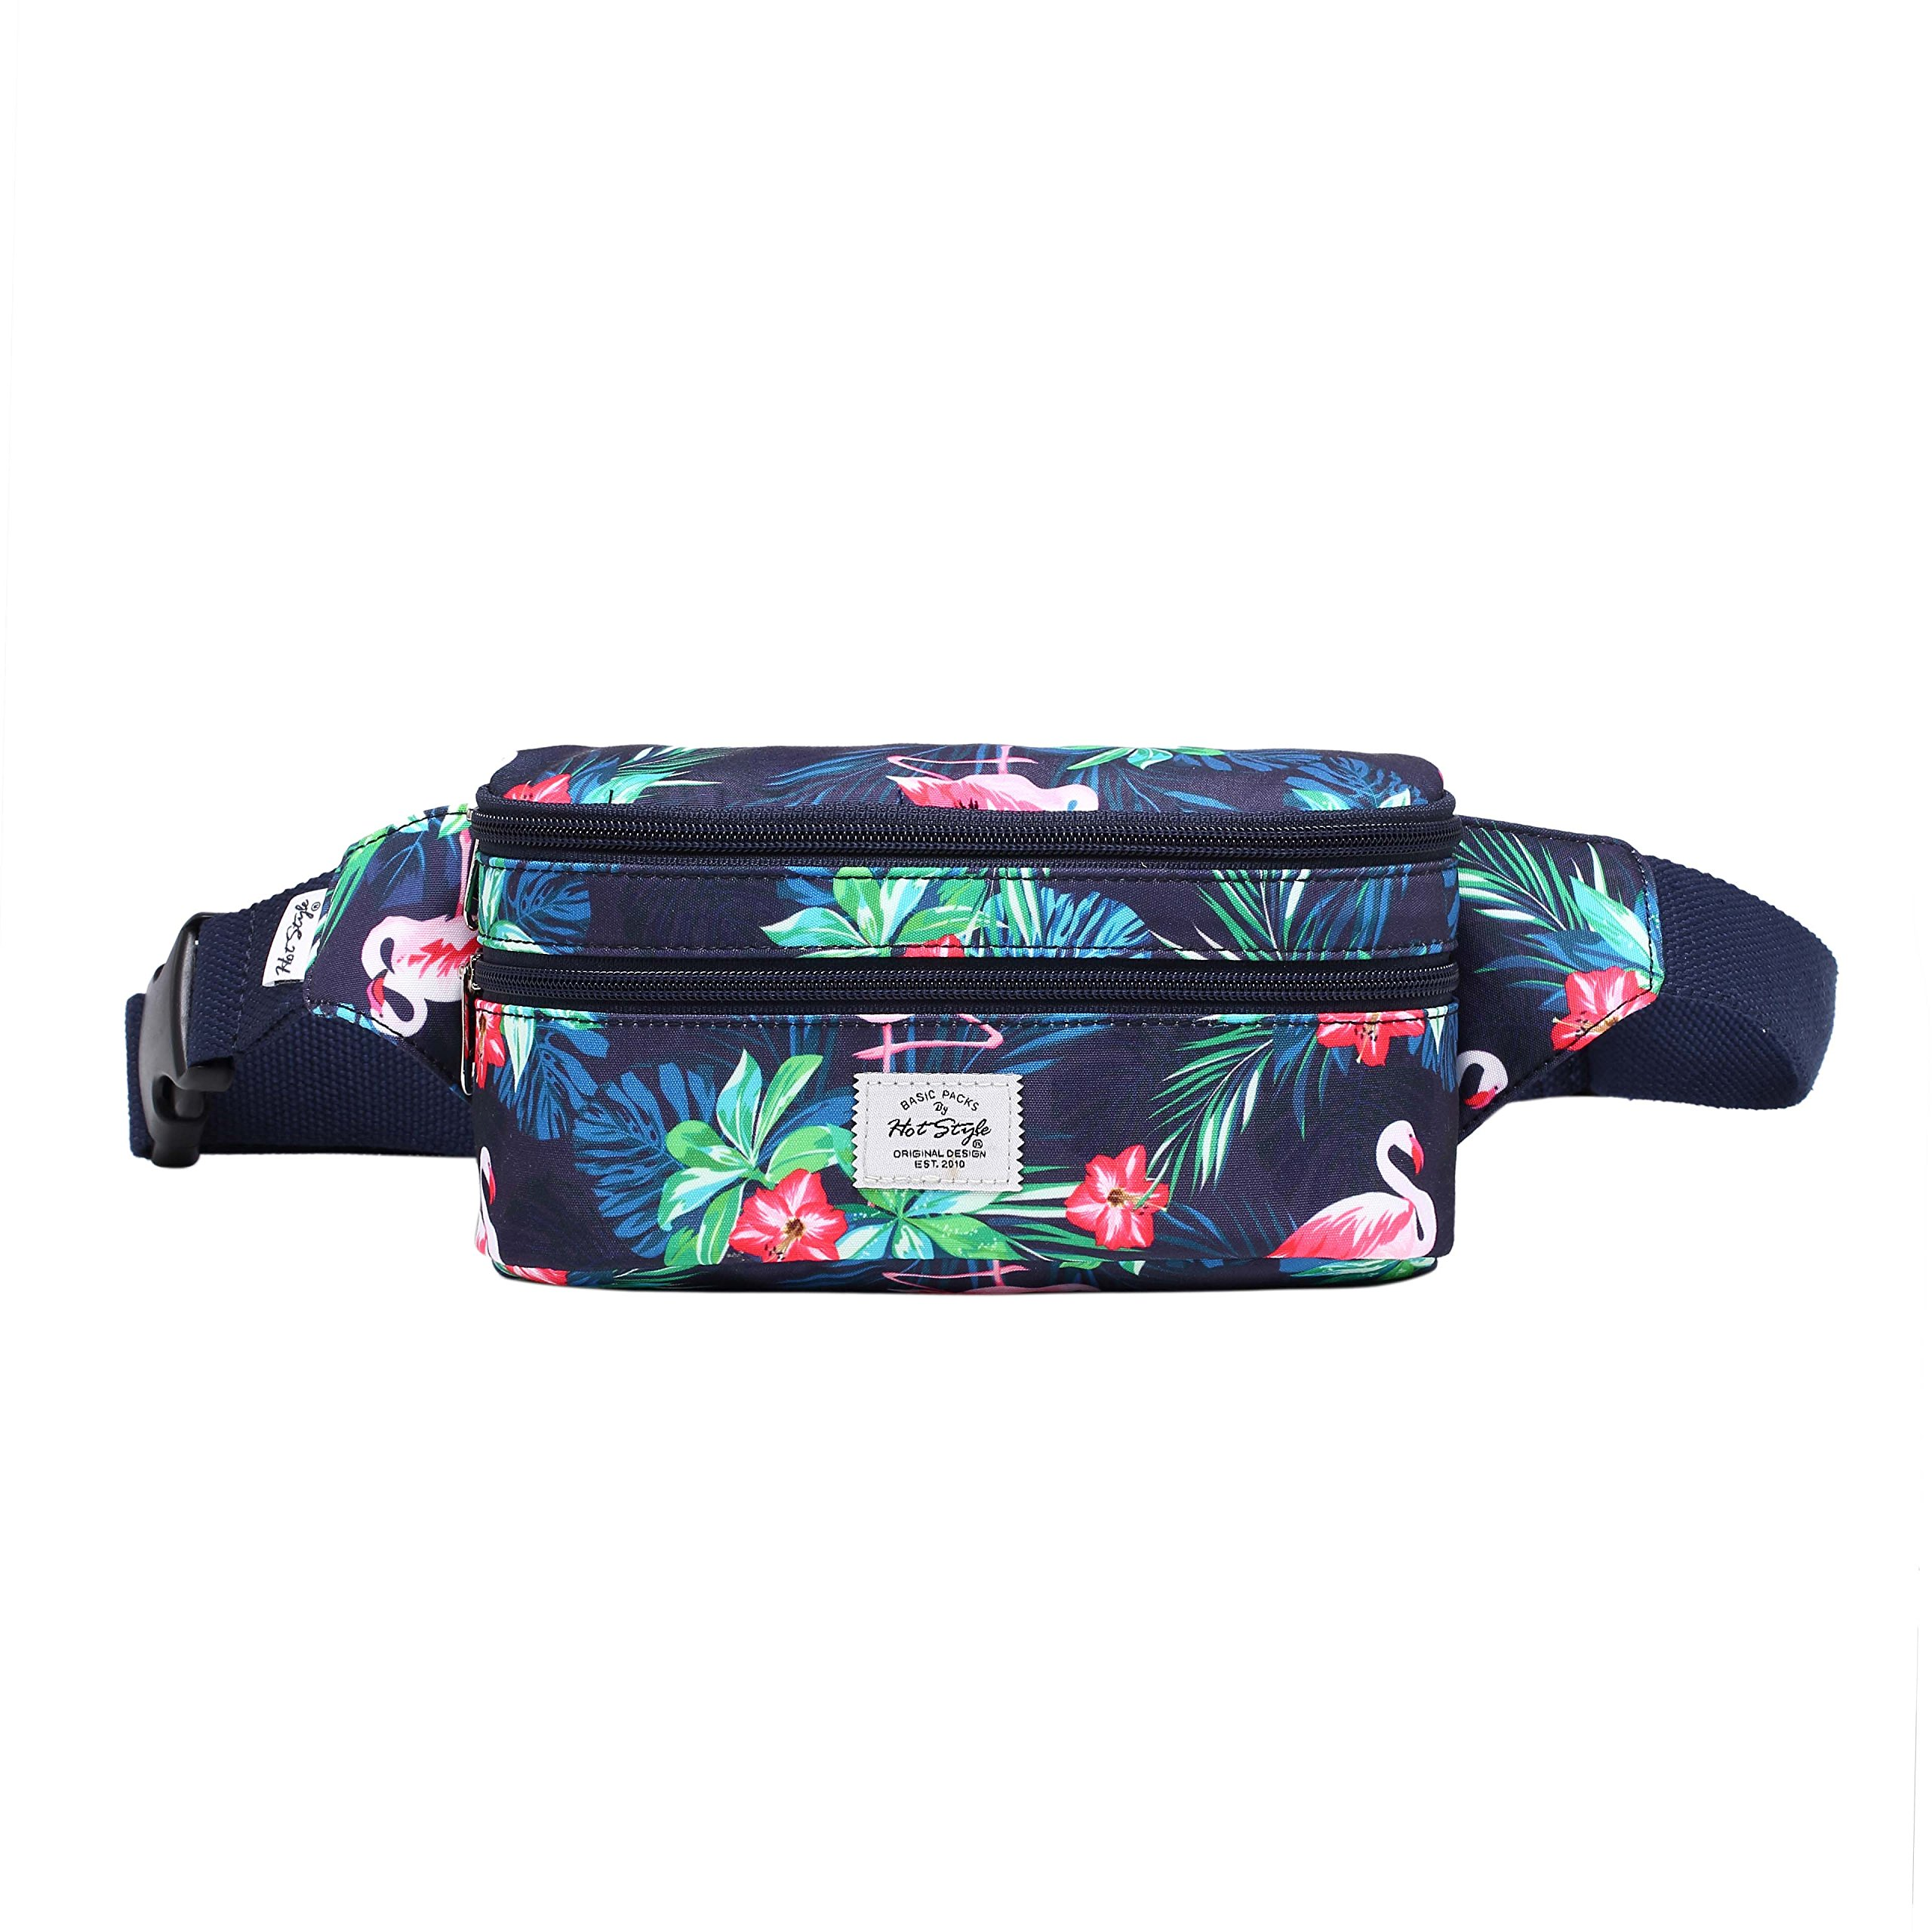 521s Fashion Waist Bag Cute Fanny Pack | 8.0''x2.5''x4.3'' | Flamingoes by hotstyle